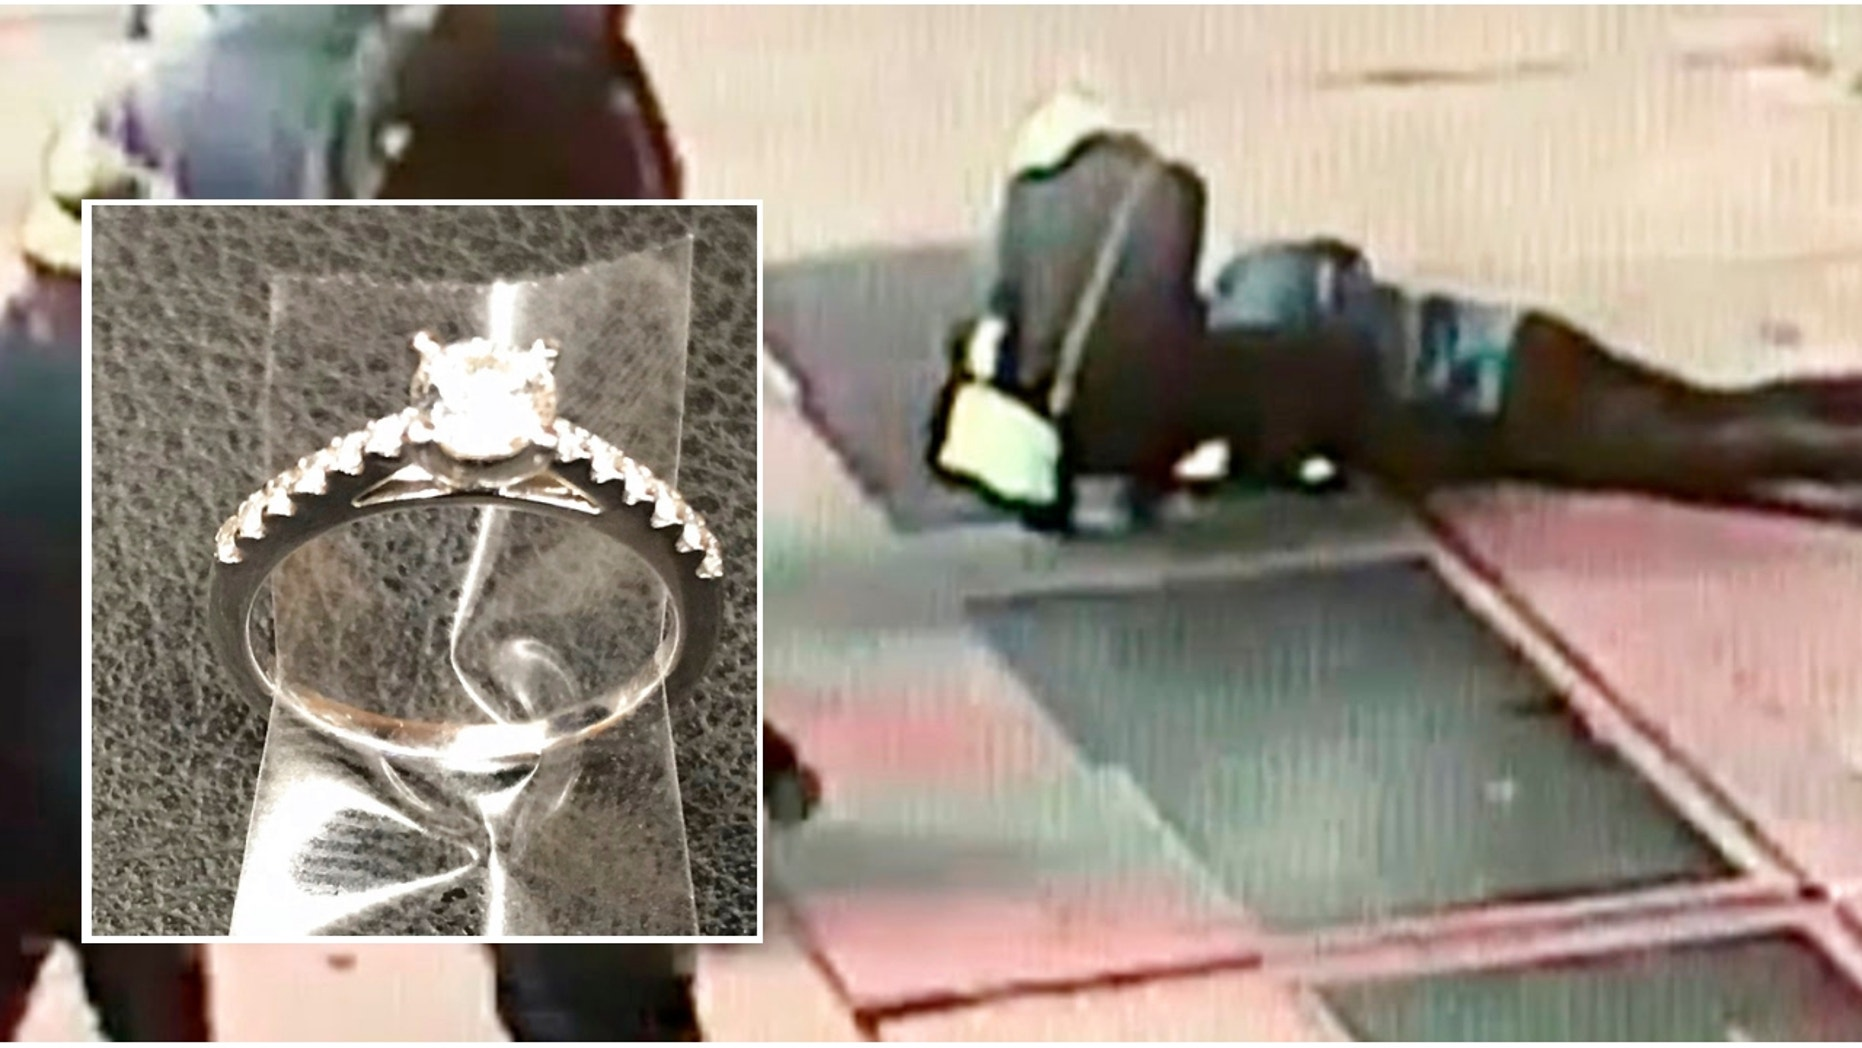 NYPD searches for fiance who dropped ring in street grate